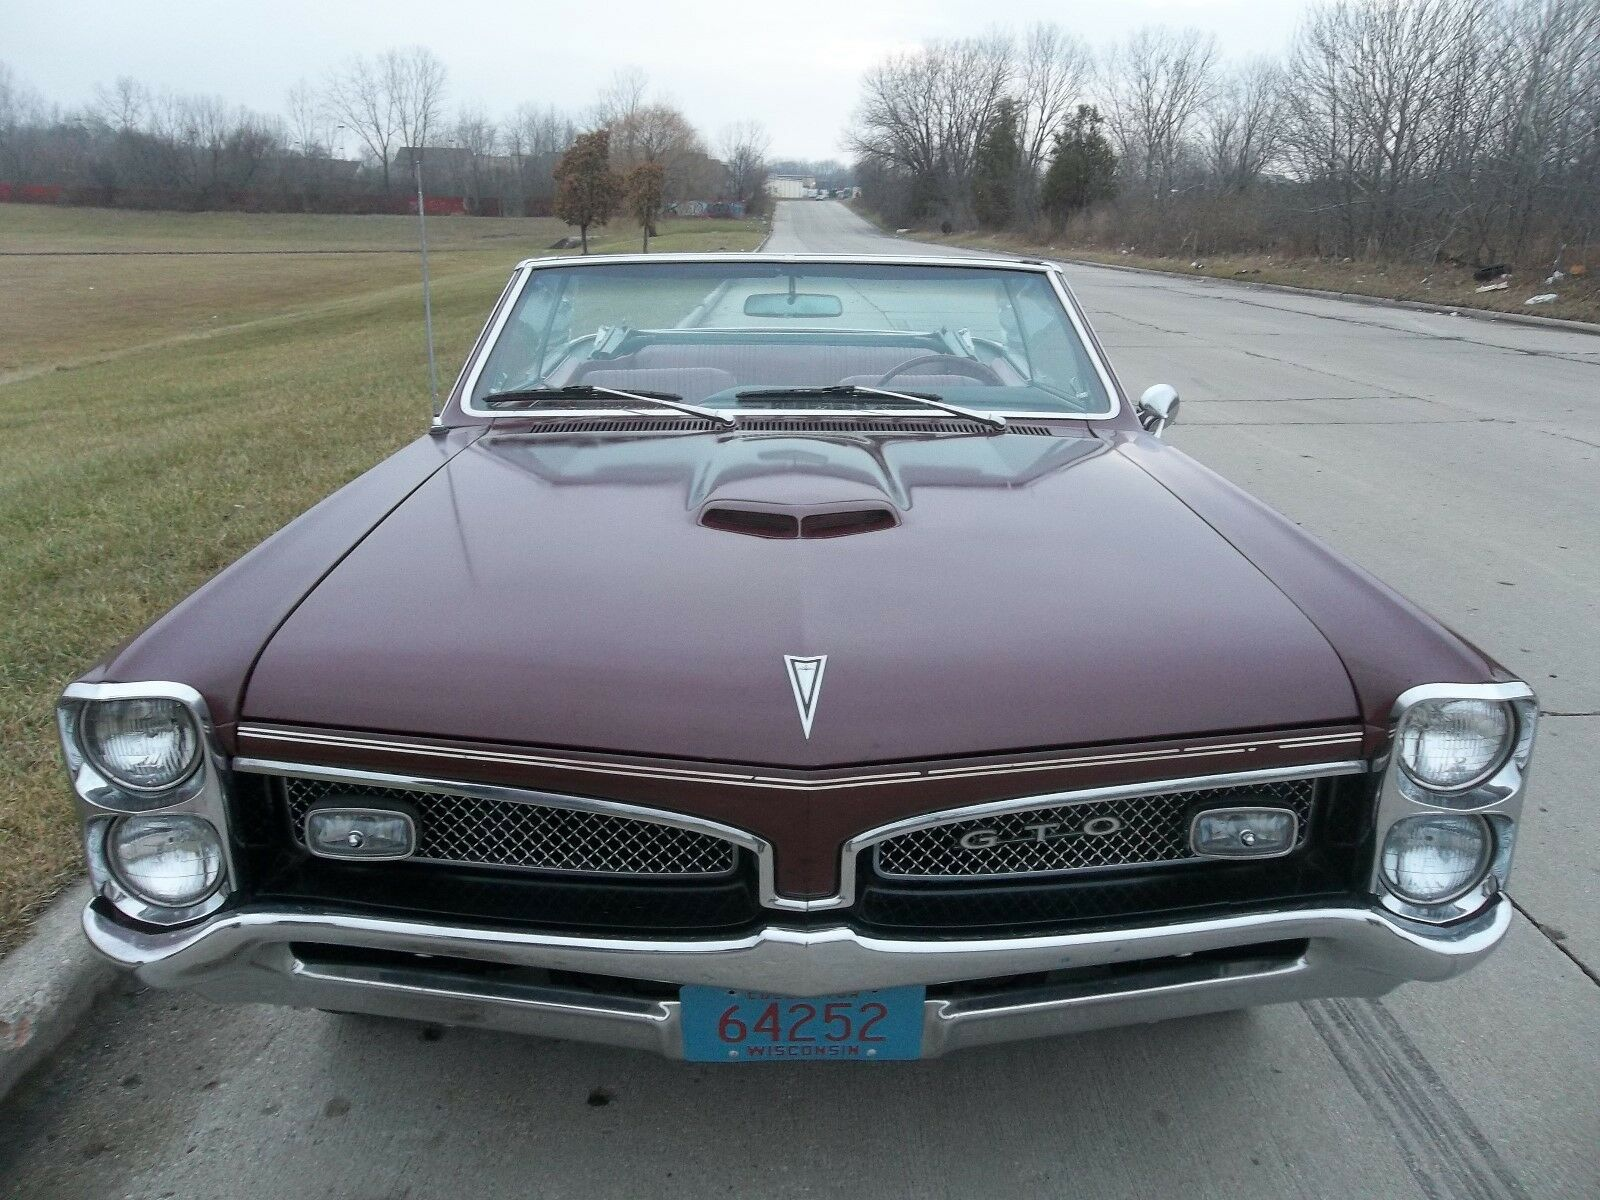 1967 Pontiac GTO Convertible with Factory Hurst Dual-Gate Shifter 1967 Pontiac GTO Convertible